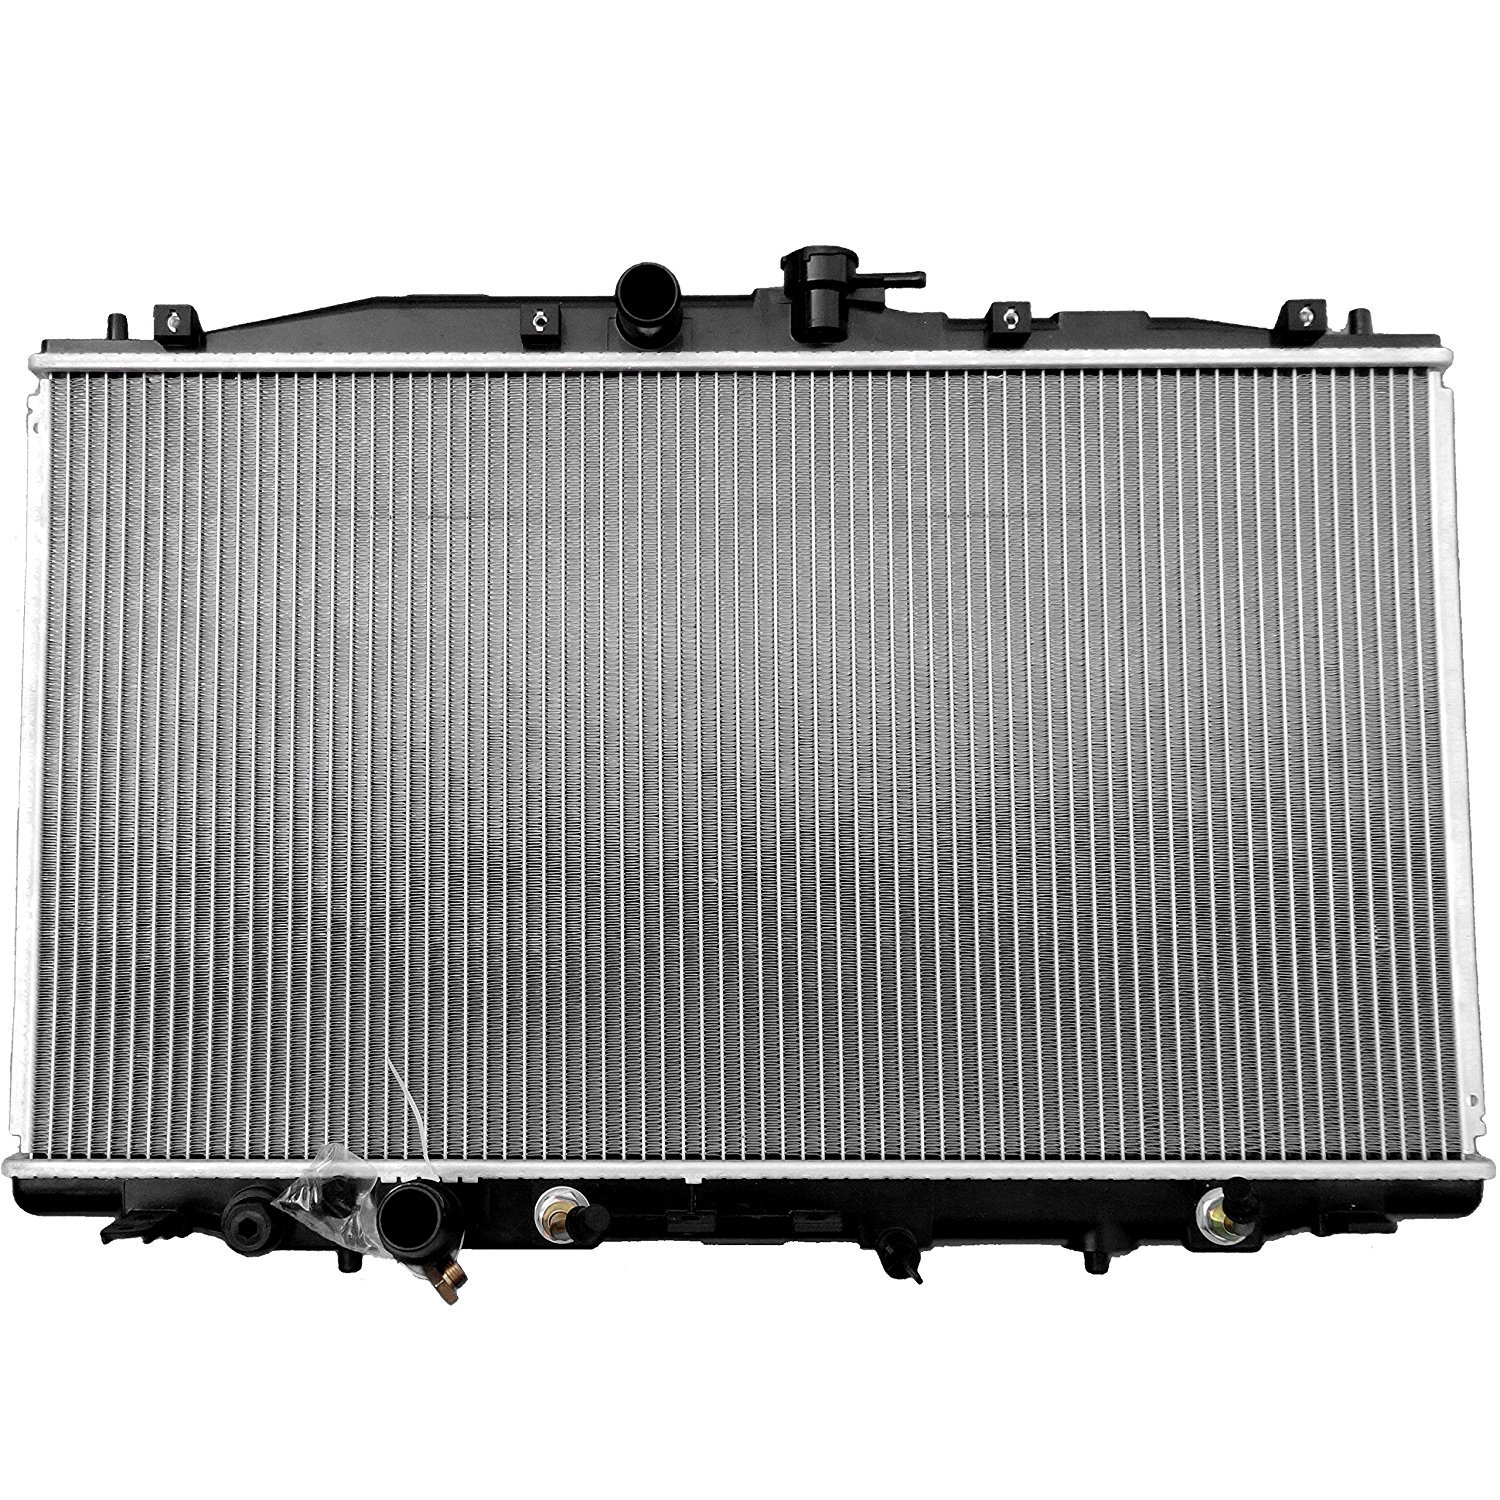 ECCPP Radiator LR2680 for 2004 2005 Acura TSX Base Sedan 4-Door 2.4L 2354CC l4 GAS DOHC Naturally Aspirated by ECCPP